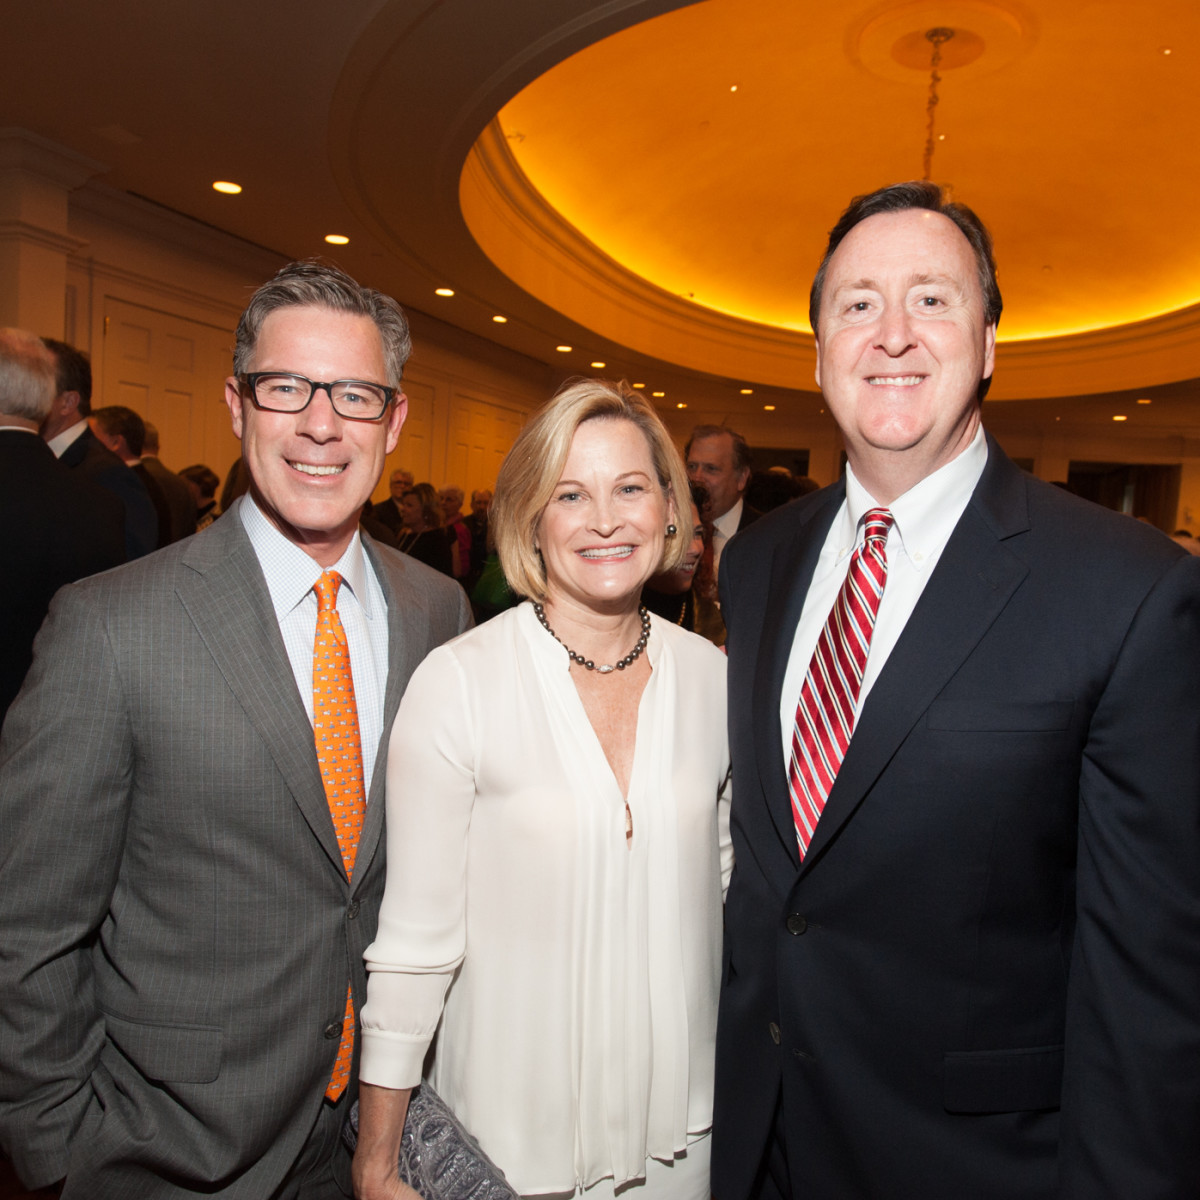 News, Shelby, Hospice Dinner, Oct. 2015, Rob Beckham, Elisabeth Beckham, Bill Herrington